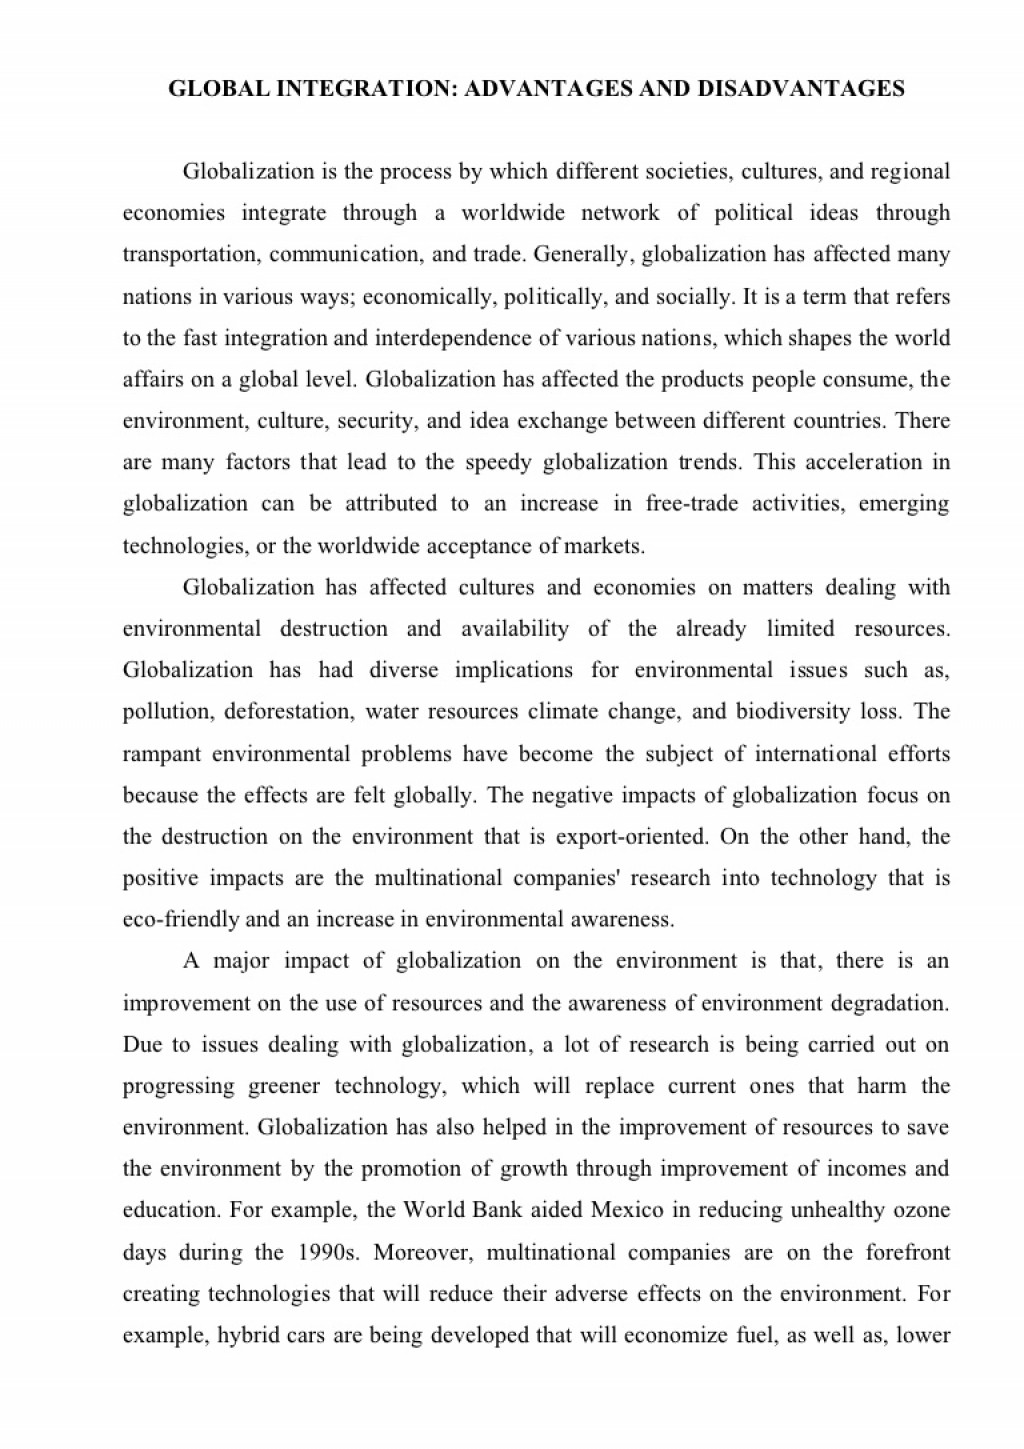 021 Essayglobalization Phpapp02 Thumbnail Essay Example Advantage And Disadvantage Of Shocking Science Advantages Disadvantages Pdf In Hindi English Large